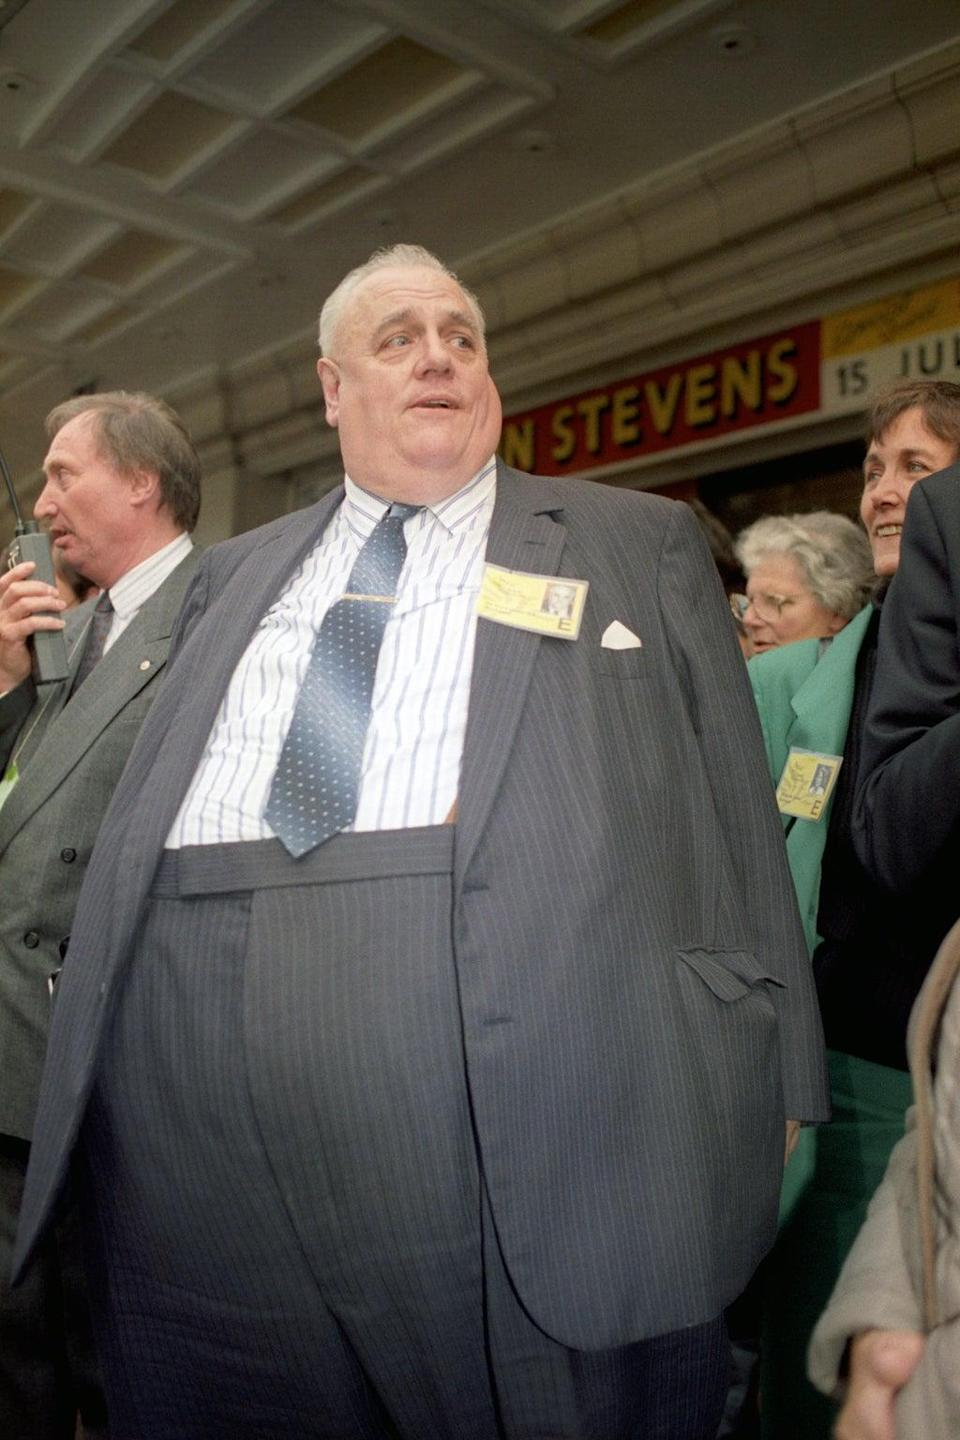 Manchester Police found there was 'overwhelming evidence' Cyril Smith should have been charged with sexual offences in his lifetime (PA) (PA Archive)